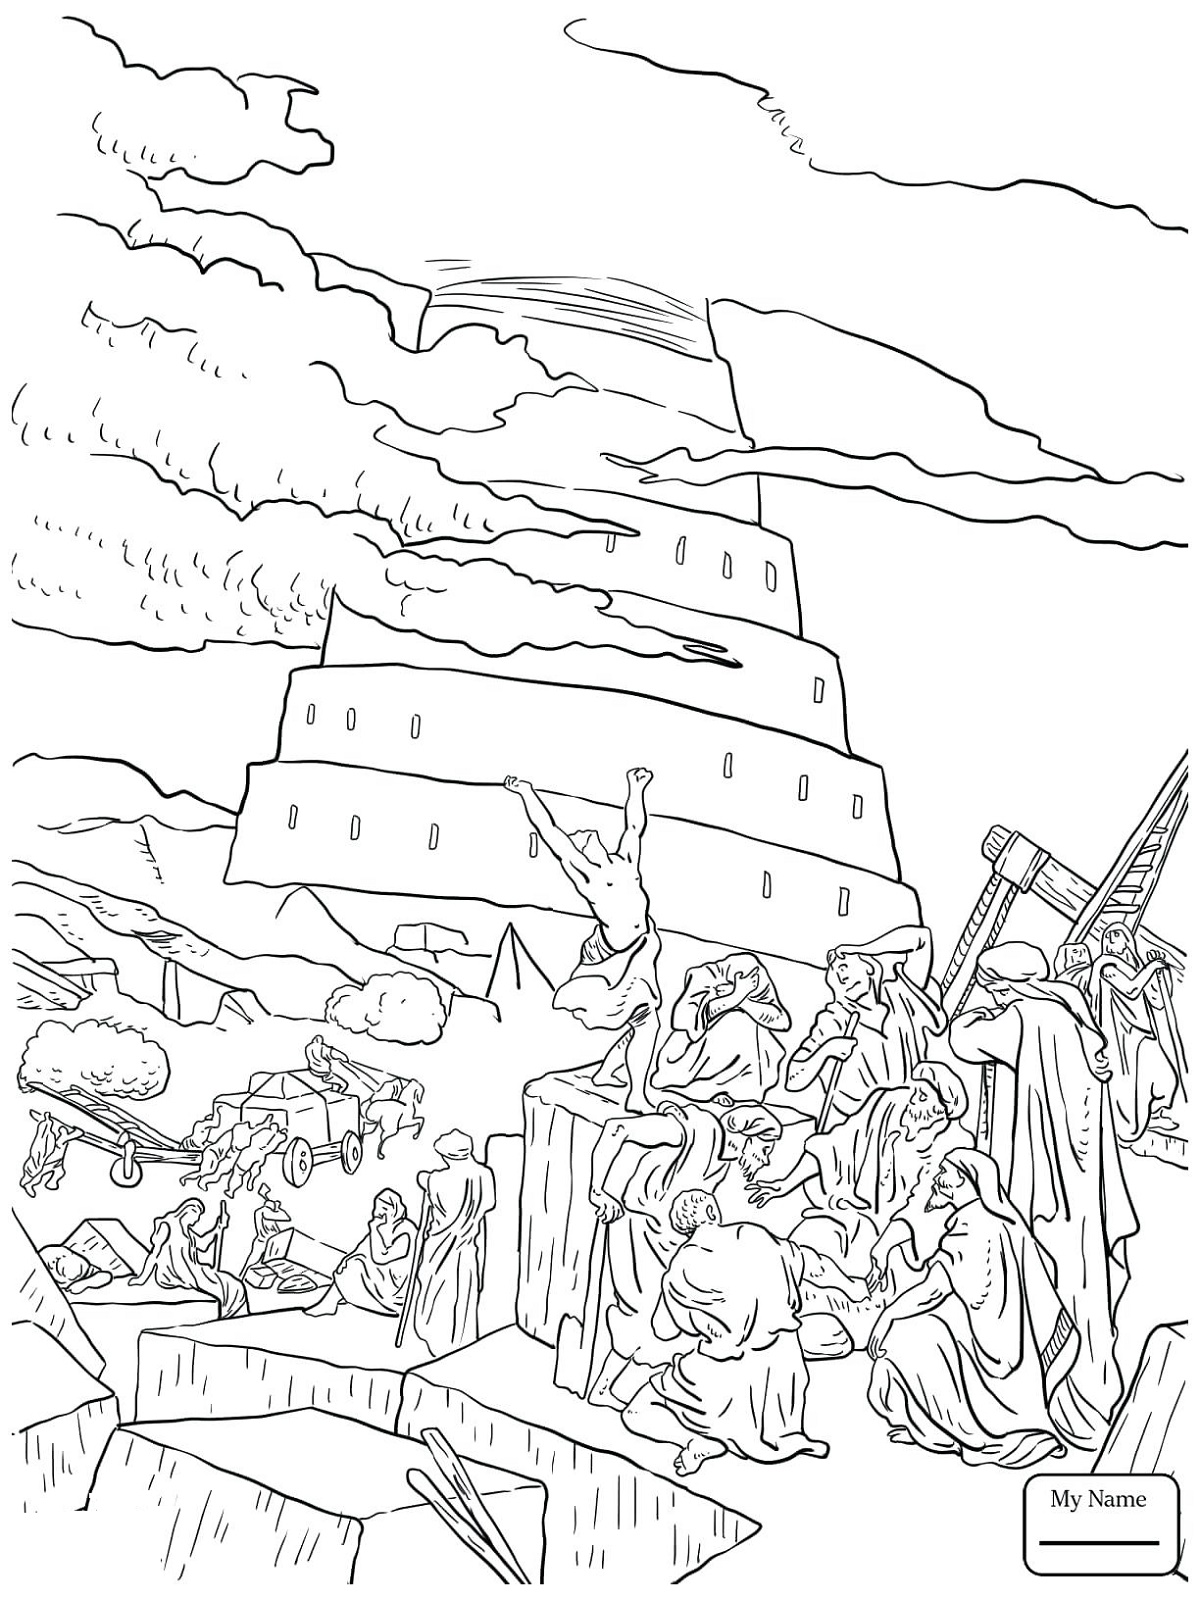 Tower Of Babel Coloring Page To Print